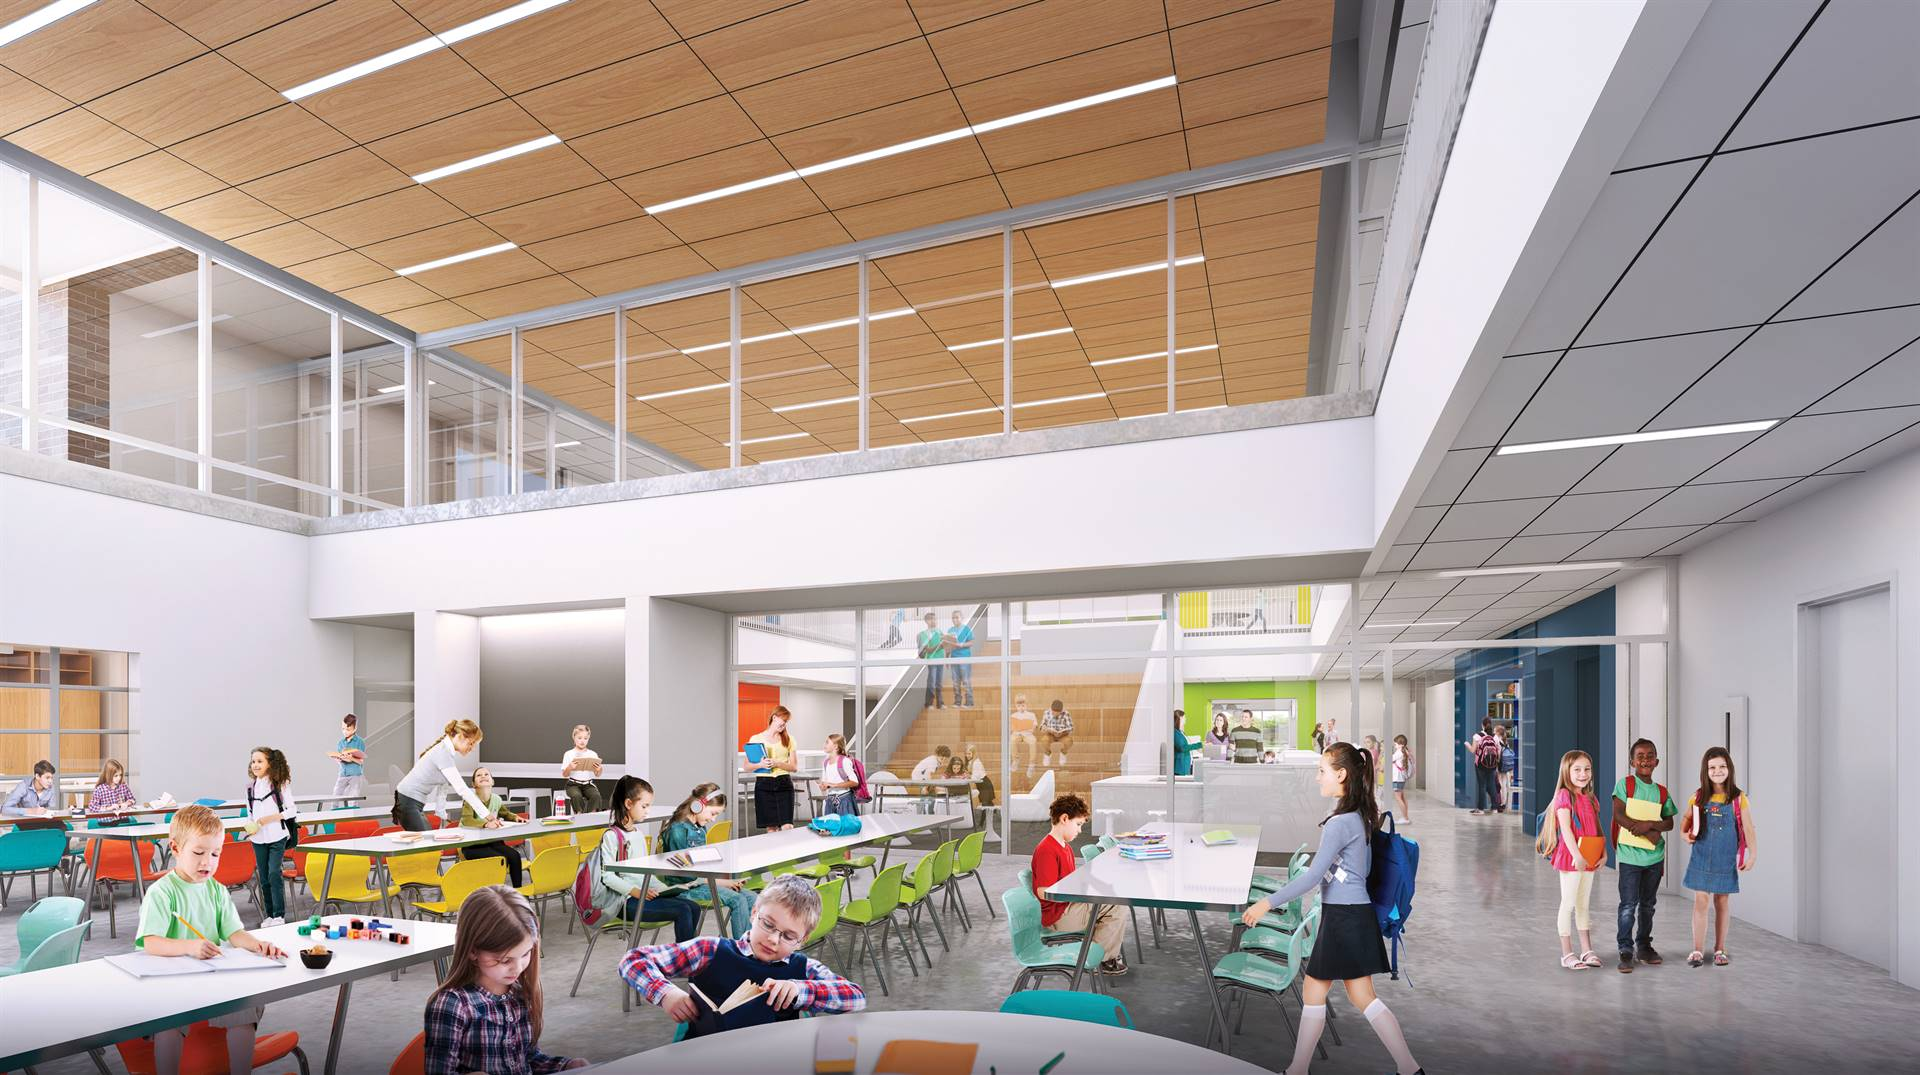 A rendering of tables and chairs in the commons space inside Windermere